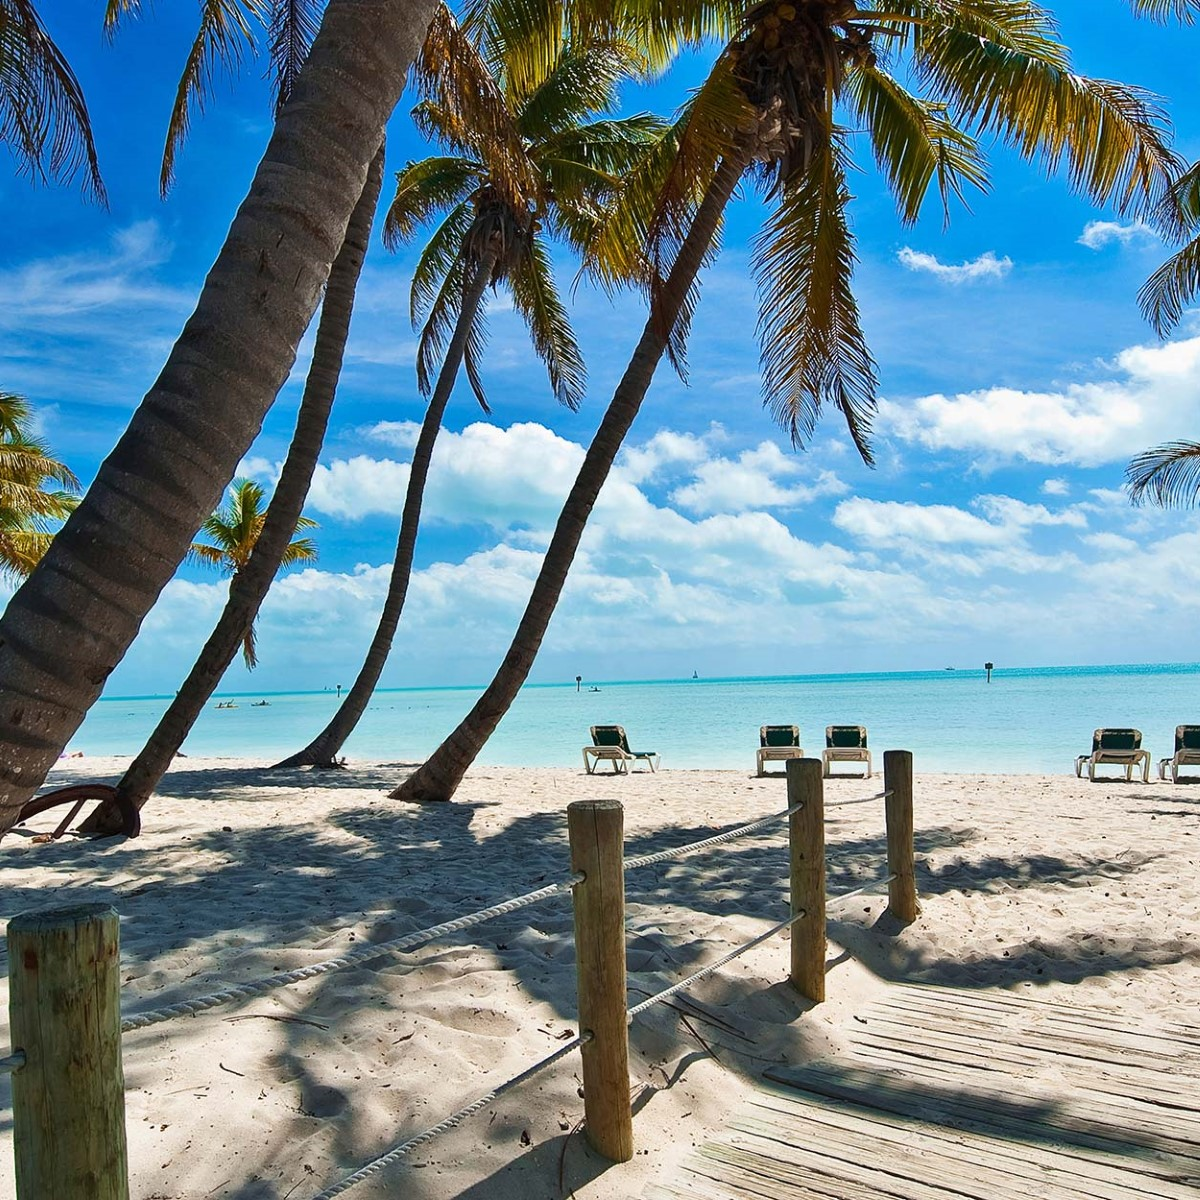 Caribbean Islands: Expedition In The Caribbean Sea: Puerto Limon